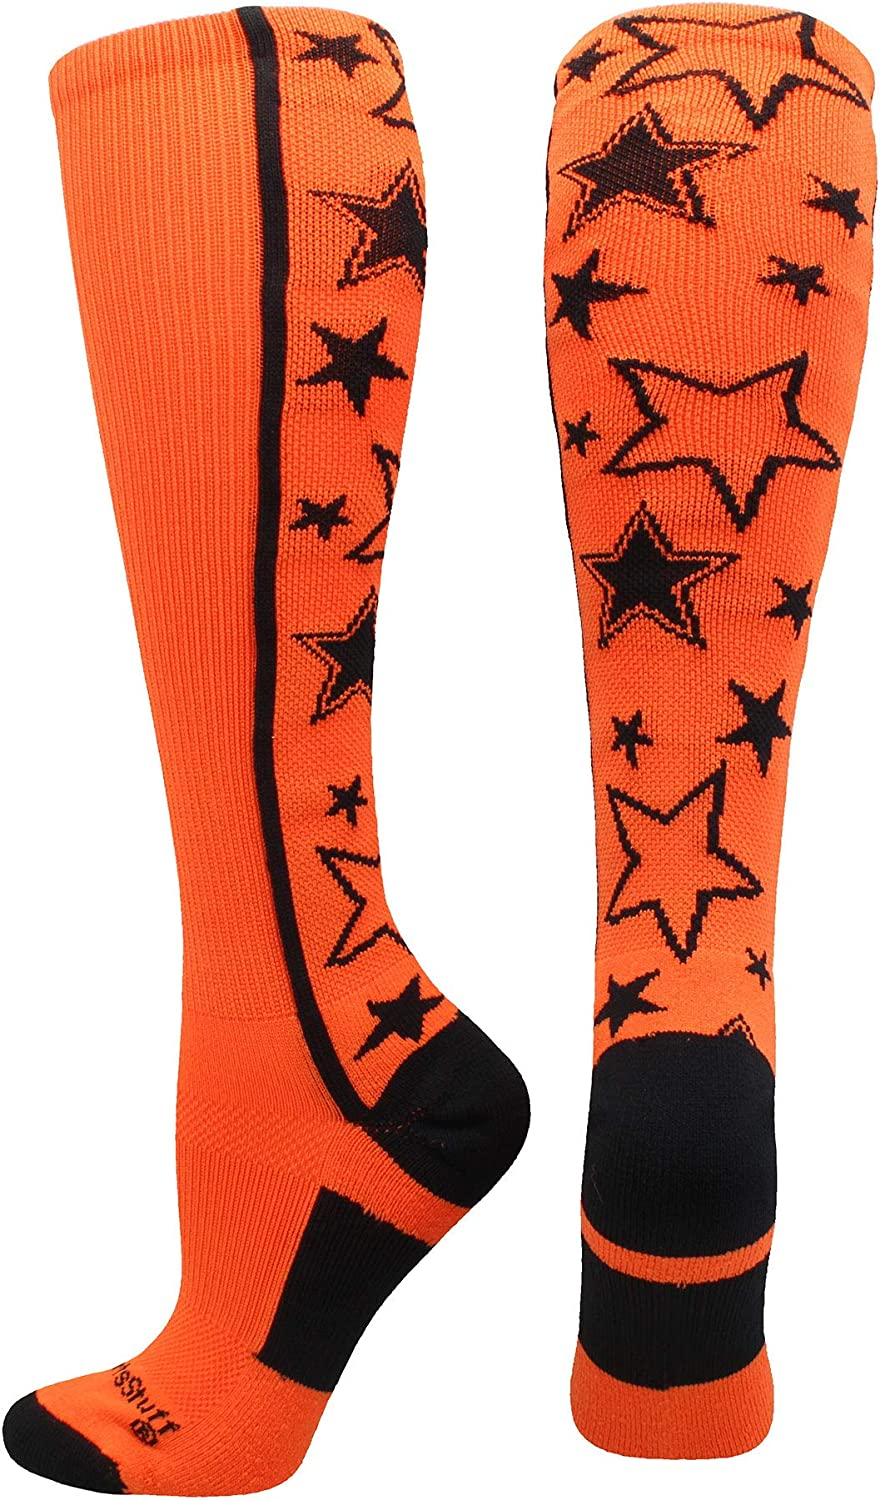 Crazy Socks with Stars Over The Calf Socks Multiple Colors